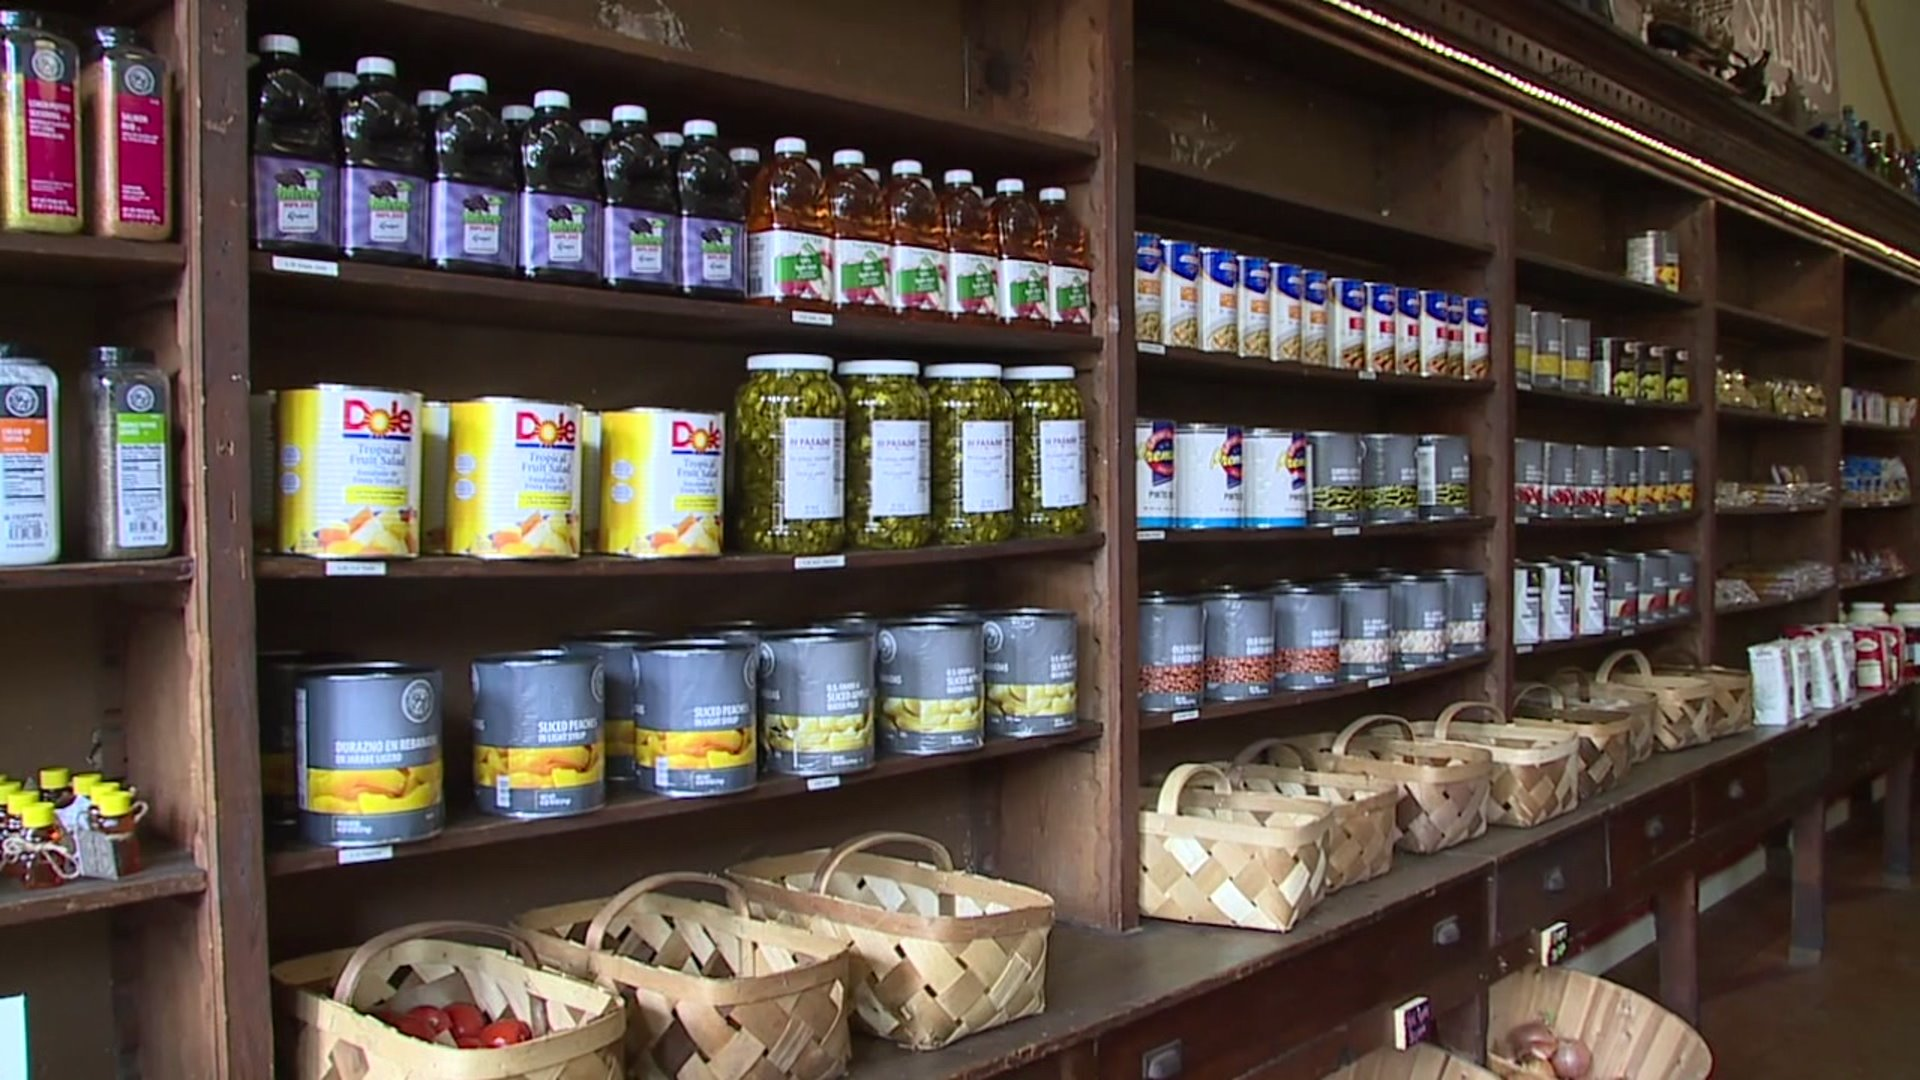 Madison coffee shop owner transitions to groceries to provide for community